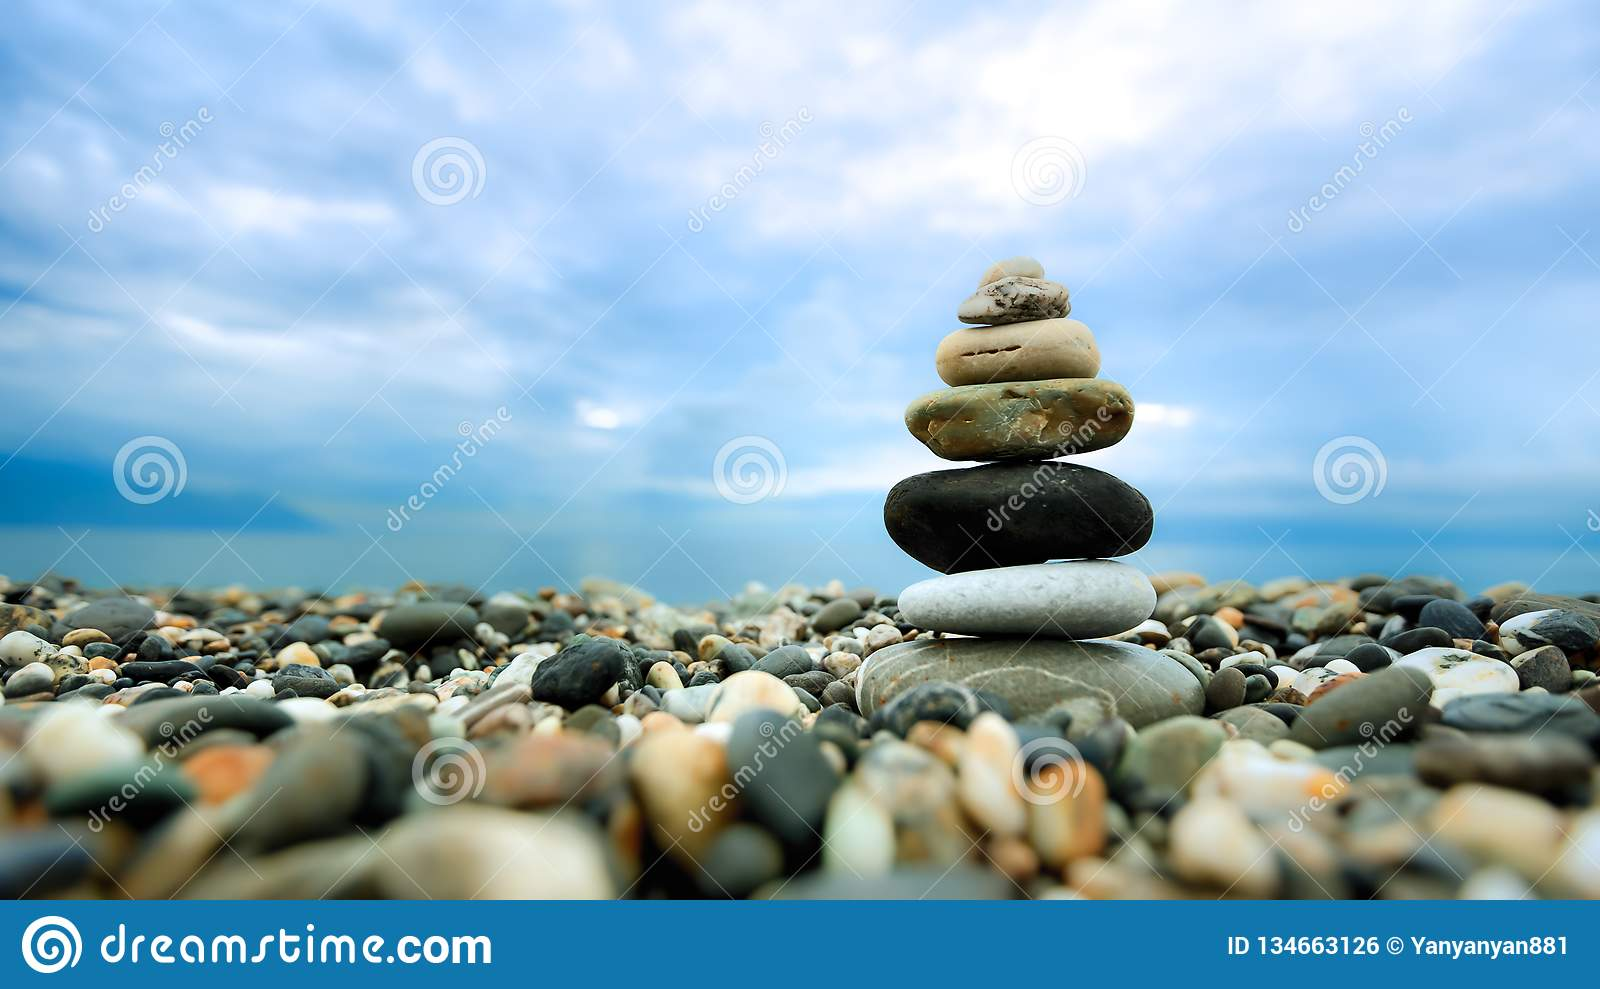 Stacked pebbles along the beach